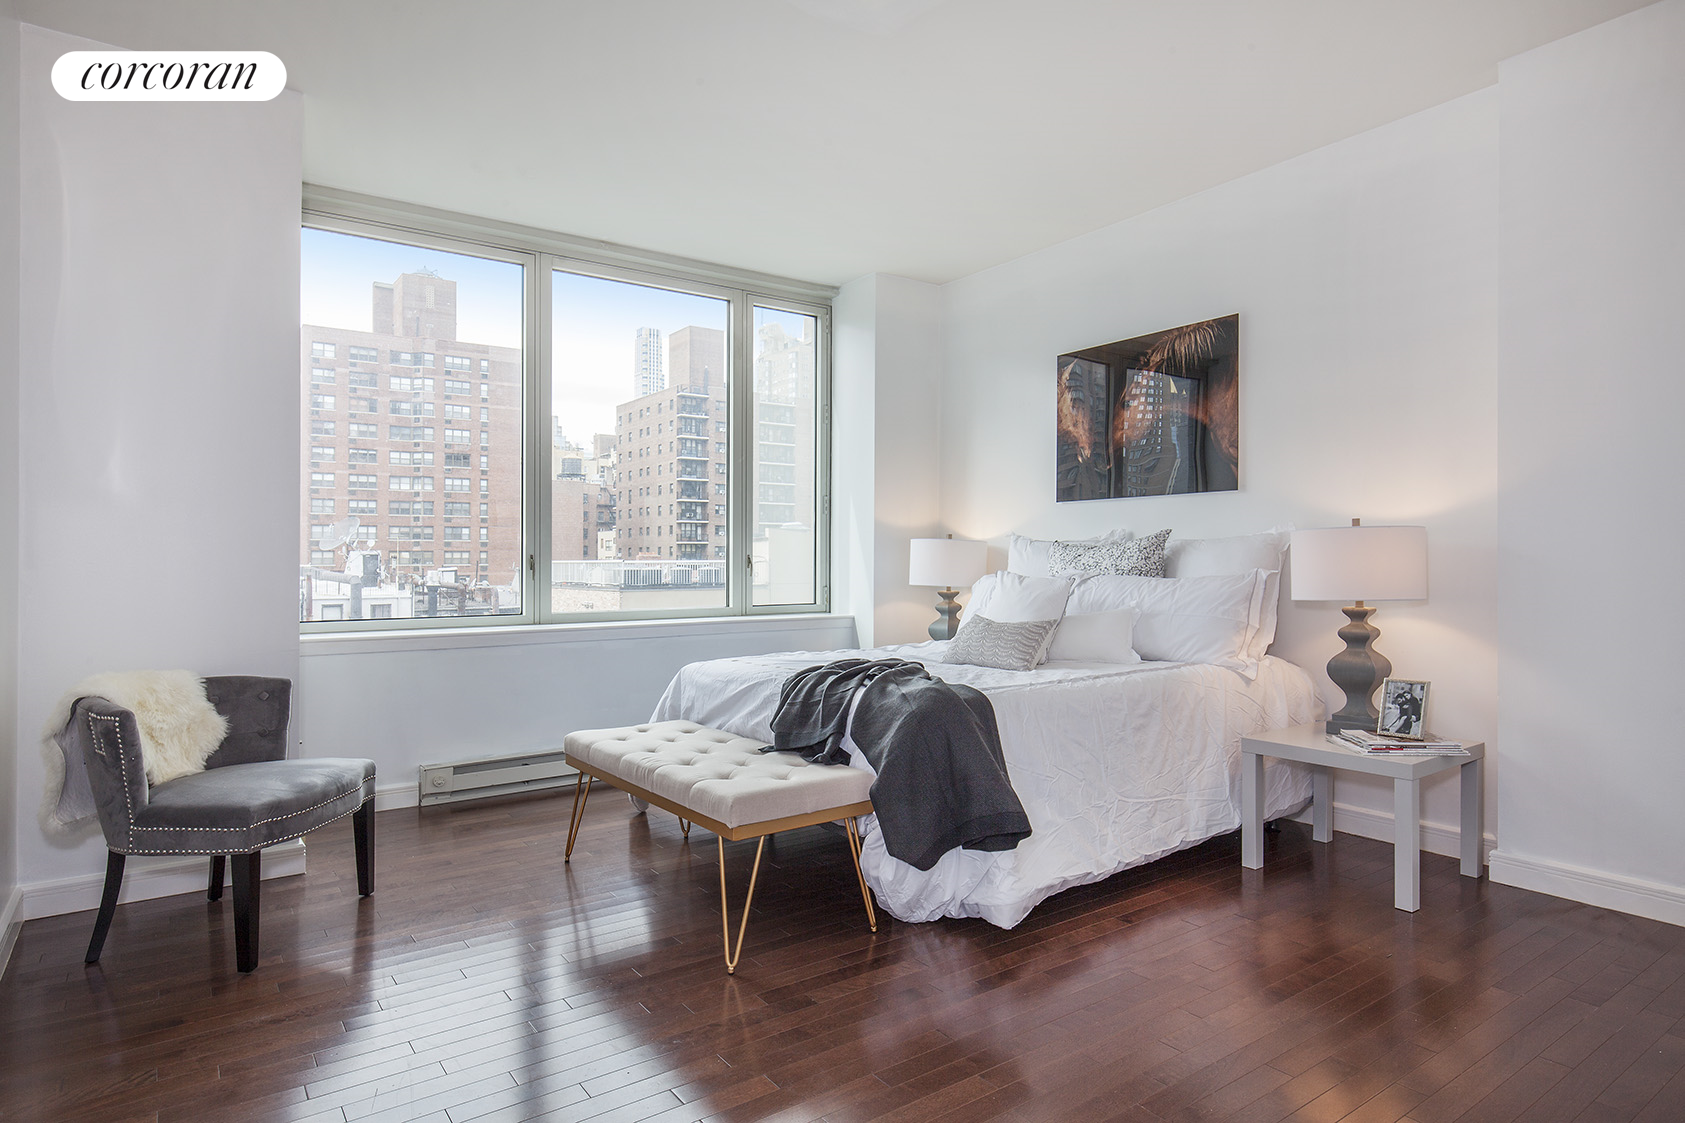 225 East 34th Street, 7C, Select a Category